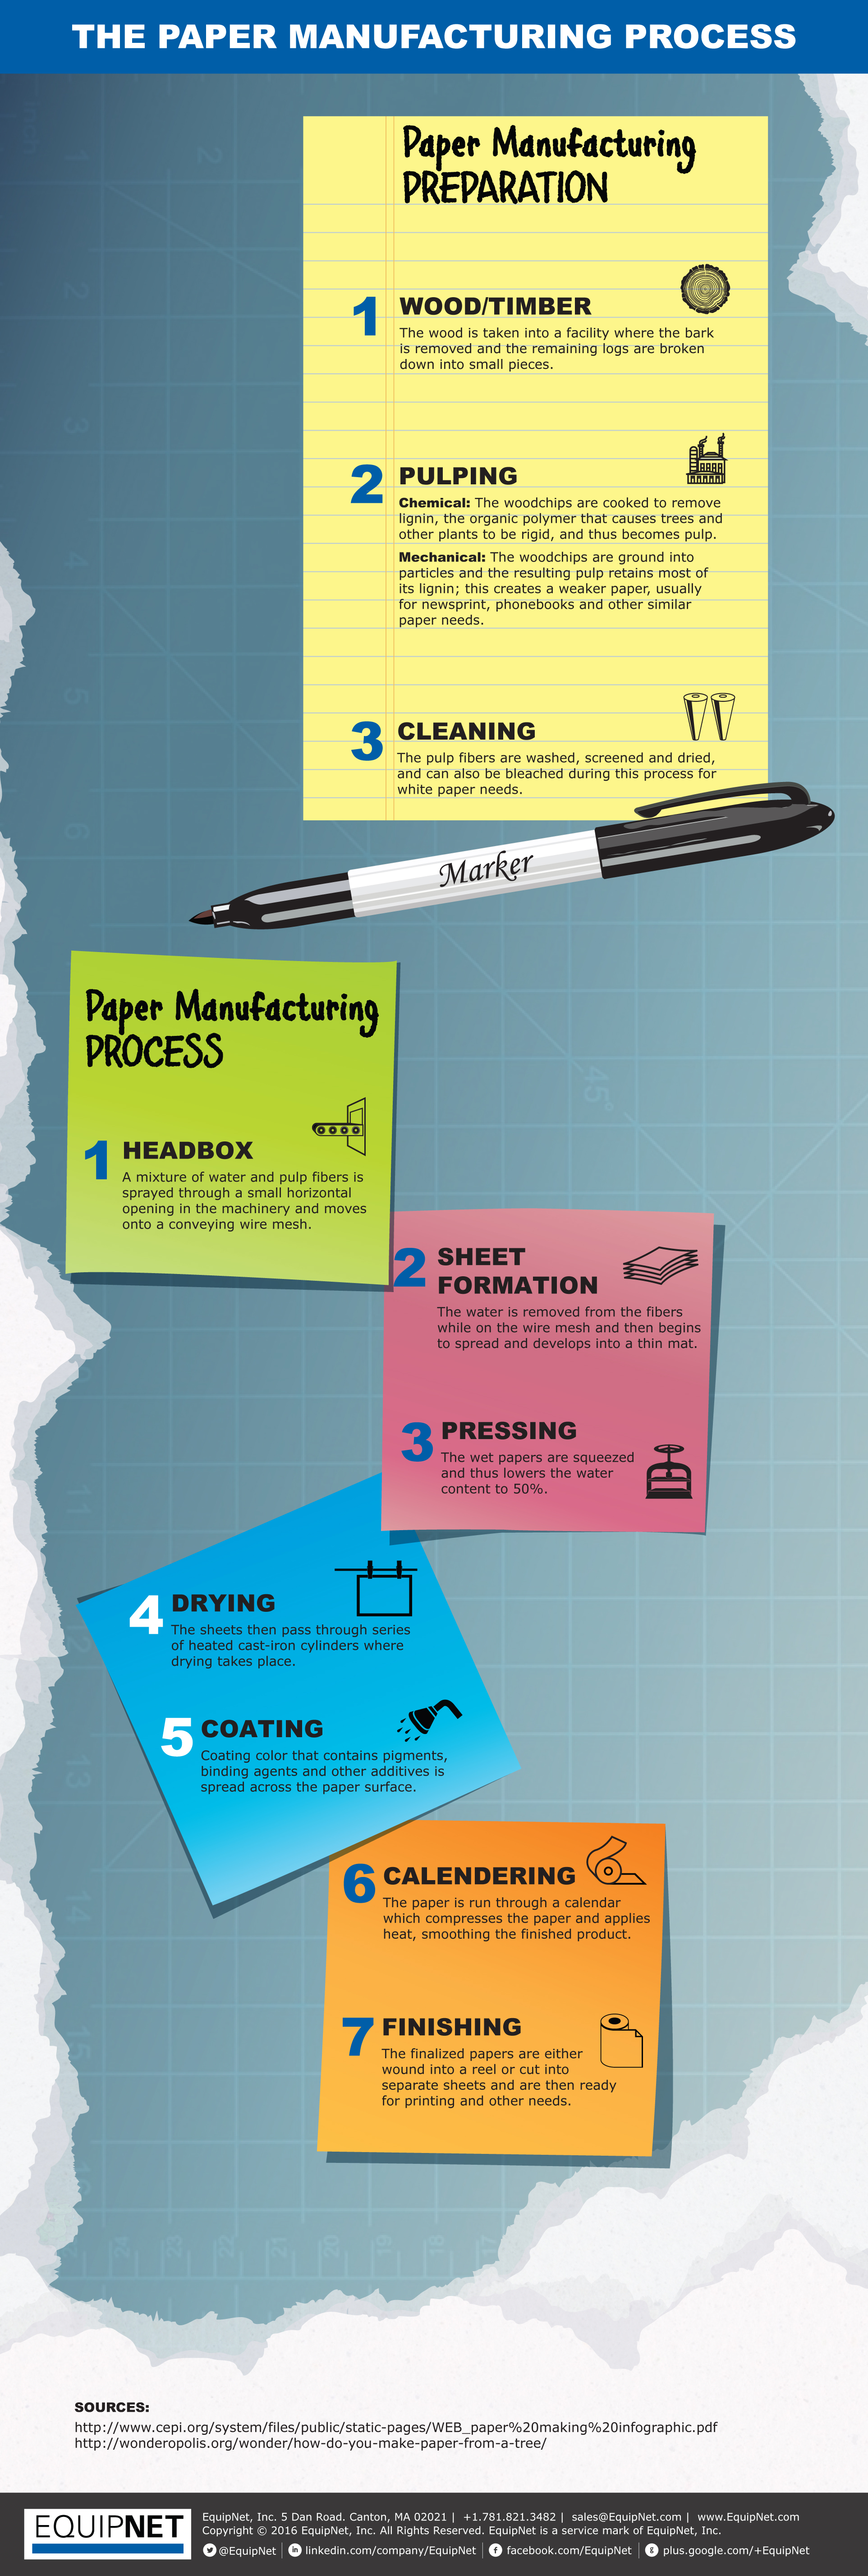 The Paper Manufacturing Process - EquipNet